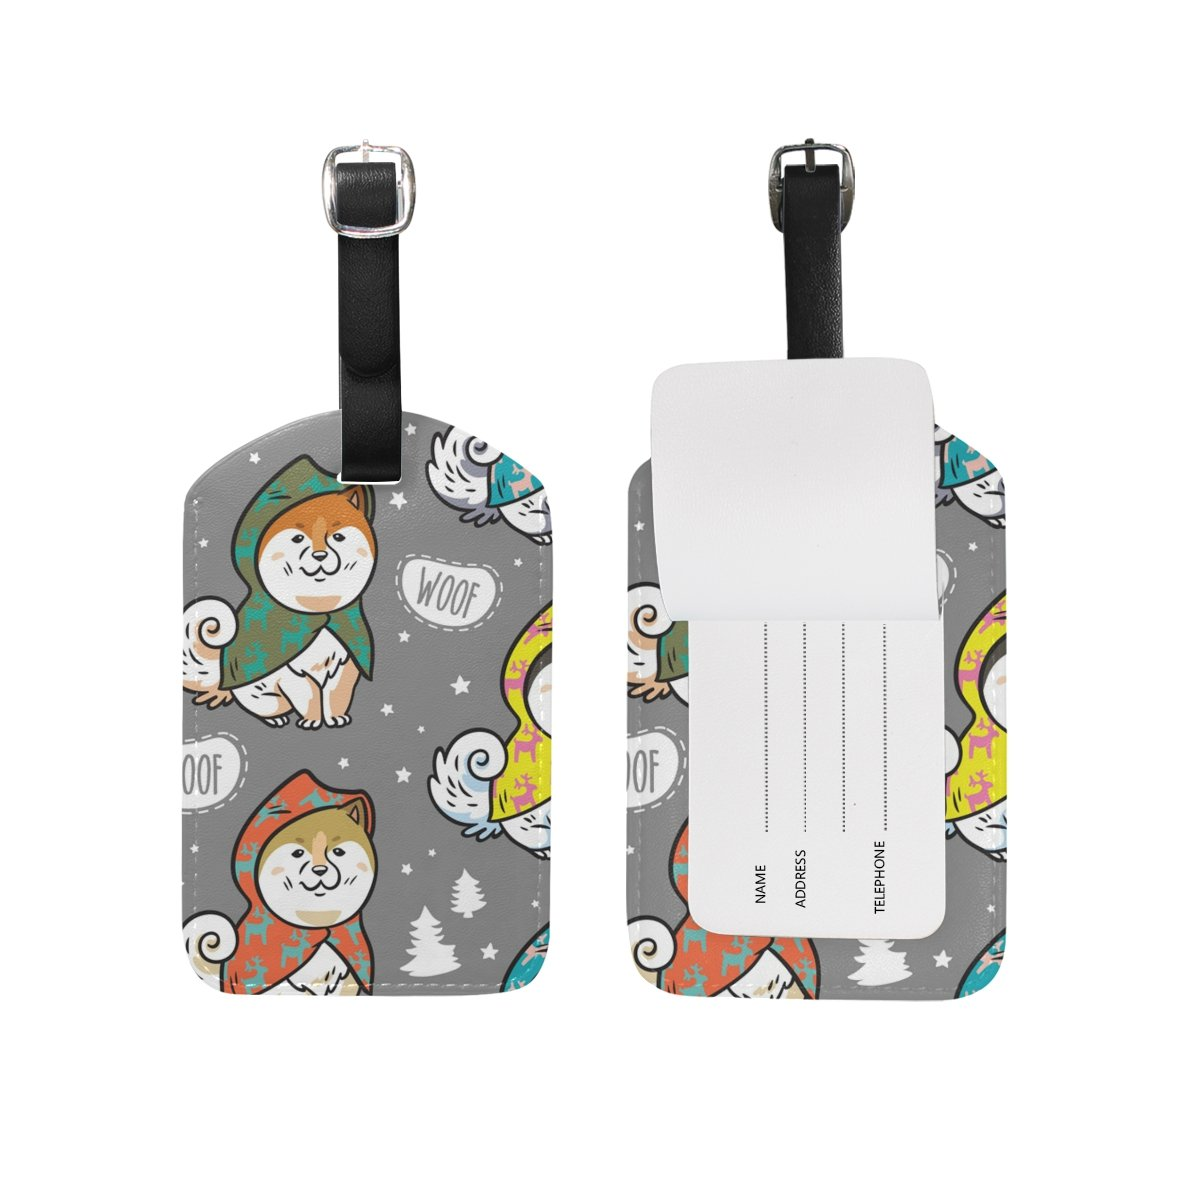 My Daily Husky Puppies Colorful Raincoats Luggage Tags PU Leather Bag Suitcases Baggage Label 2 Pieces Set